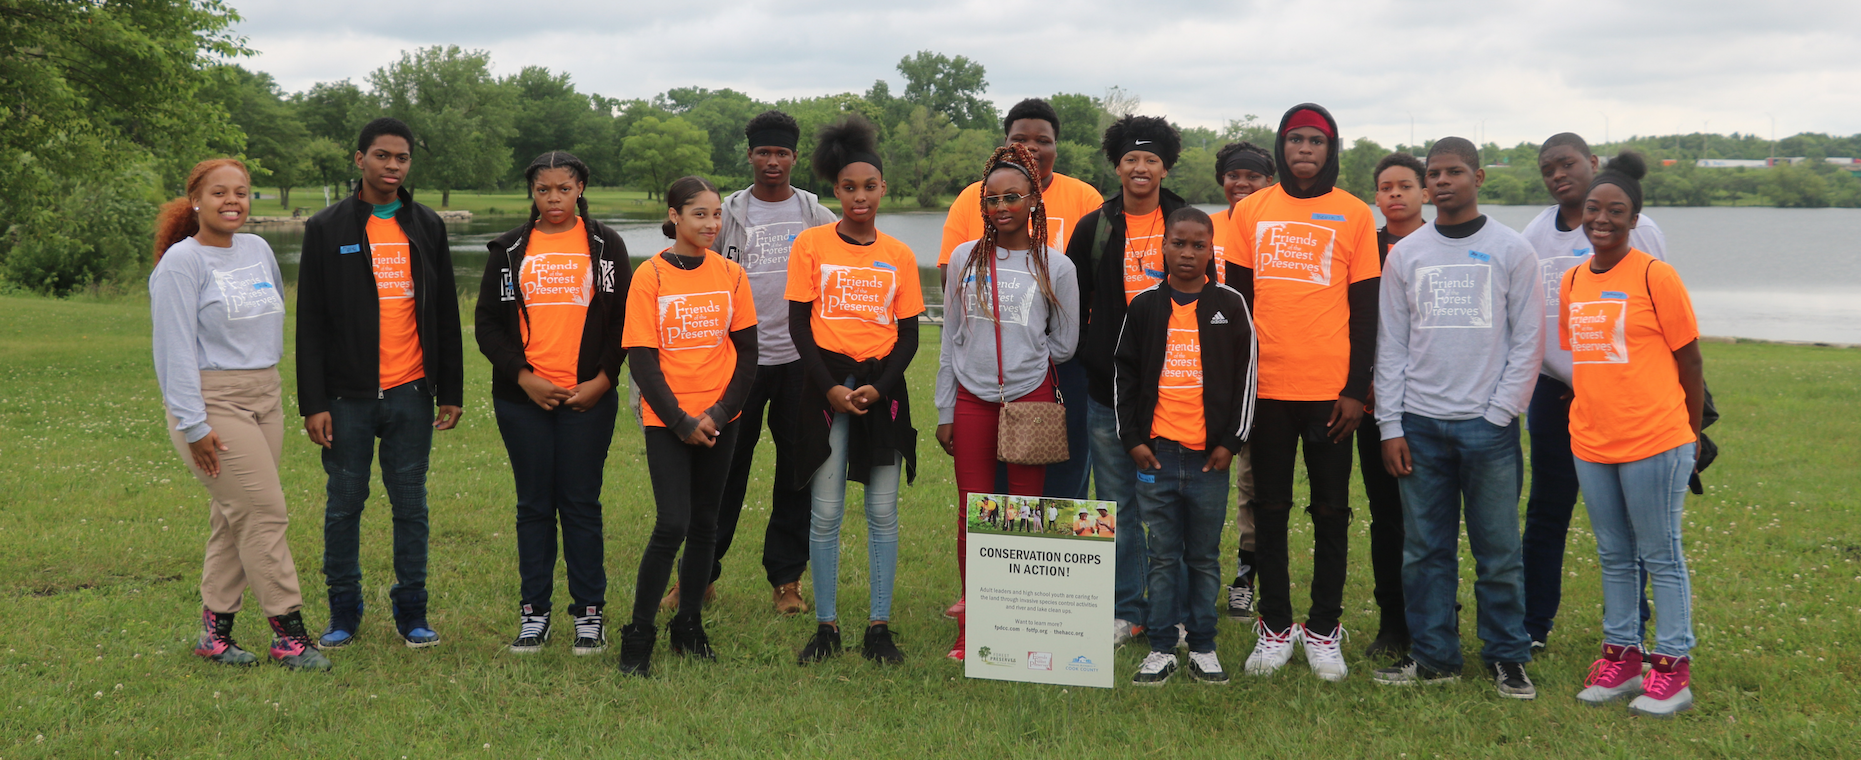 Jackson State University CSET student Antonio Richardson, fifth from left, just completed his annual pilgrimage to a forest in the Chicago area, where he helped Illinois teenagers learn about the environment and conservation. The 21-year-old team leader is studying industrial technology in the College of Science, Engineering and Technology and is a native of Illinois. He works with a forest preserve program in Cook County that provides a summer job to at-risk youth that is fun and educational, yet involves some labor.